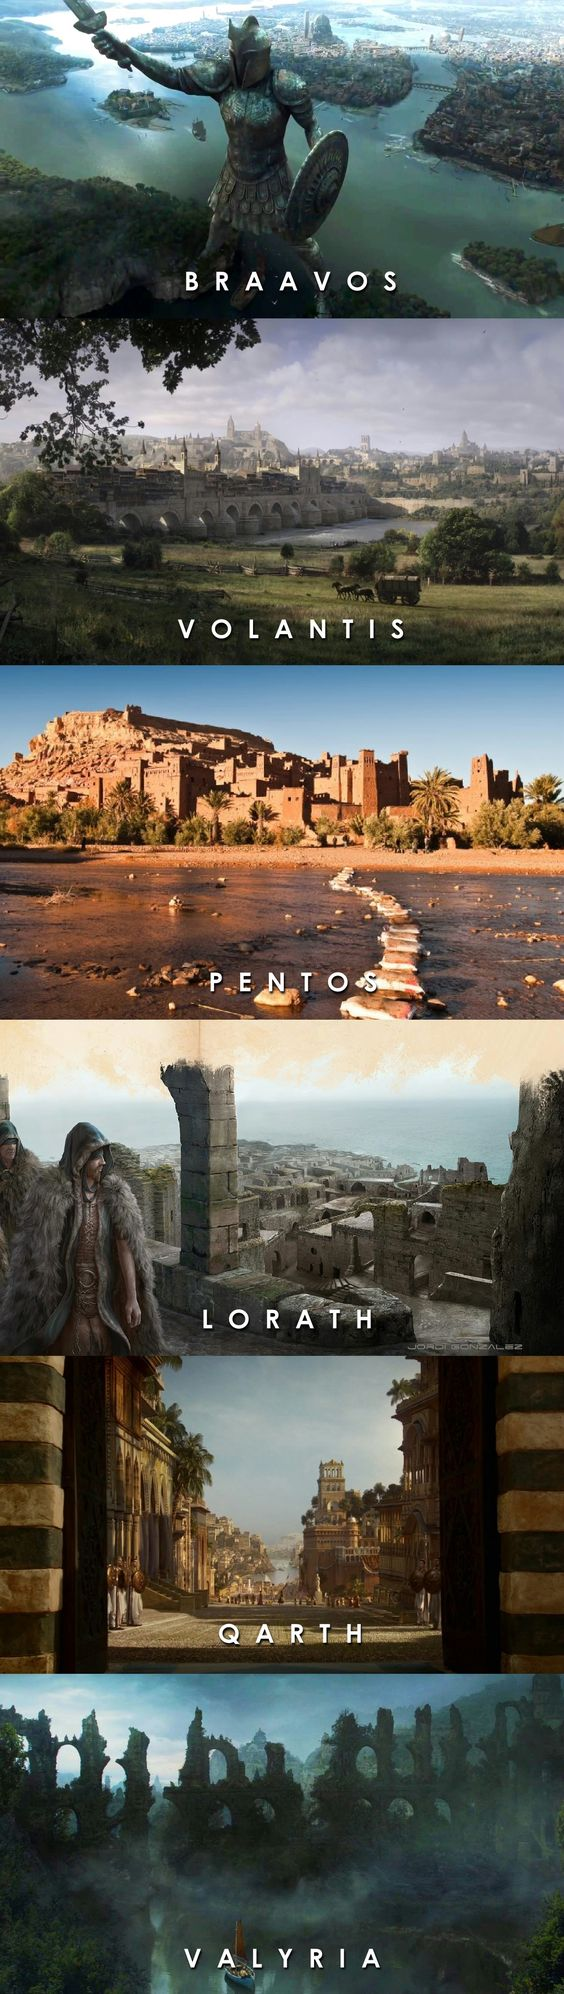 Song of Ice & Fire : Essos - some Free Cities, Qarth and the Old Valyria. My absolute Fav Book Series!!!